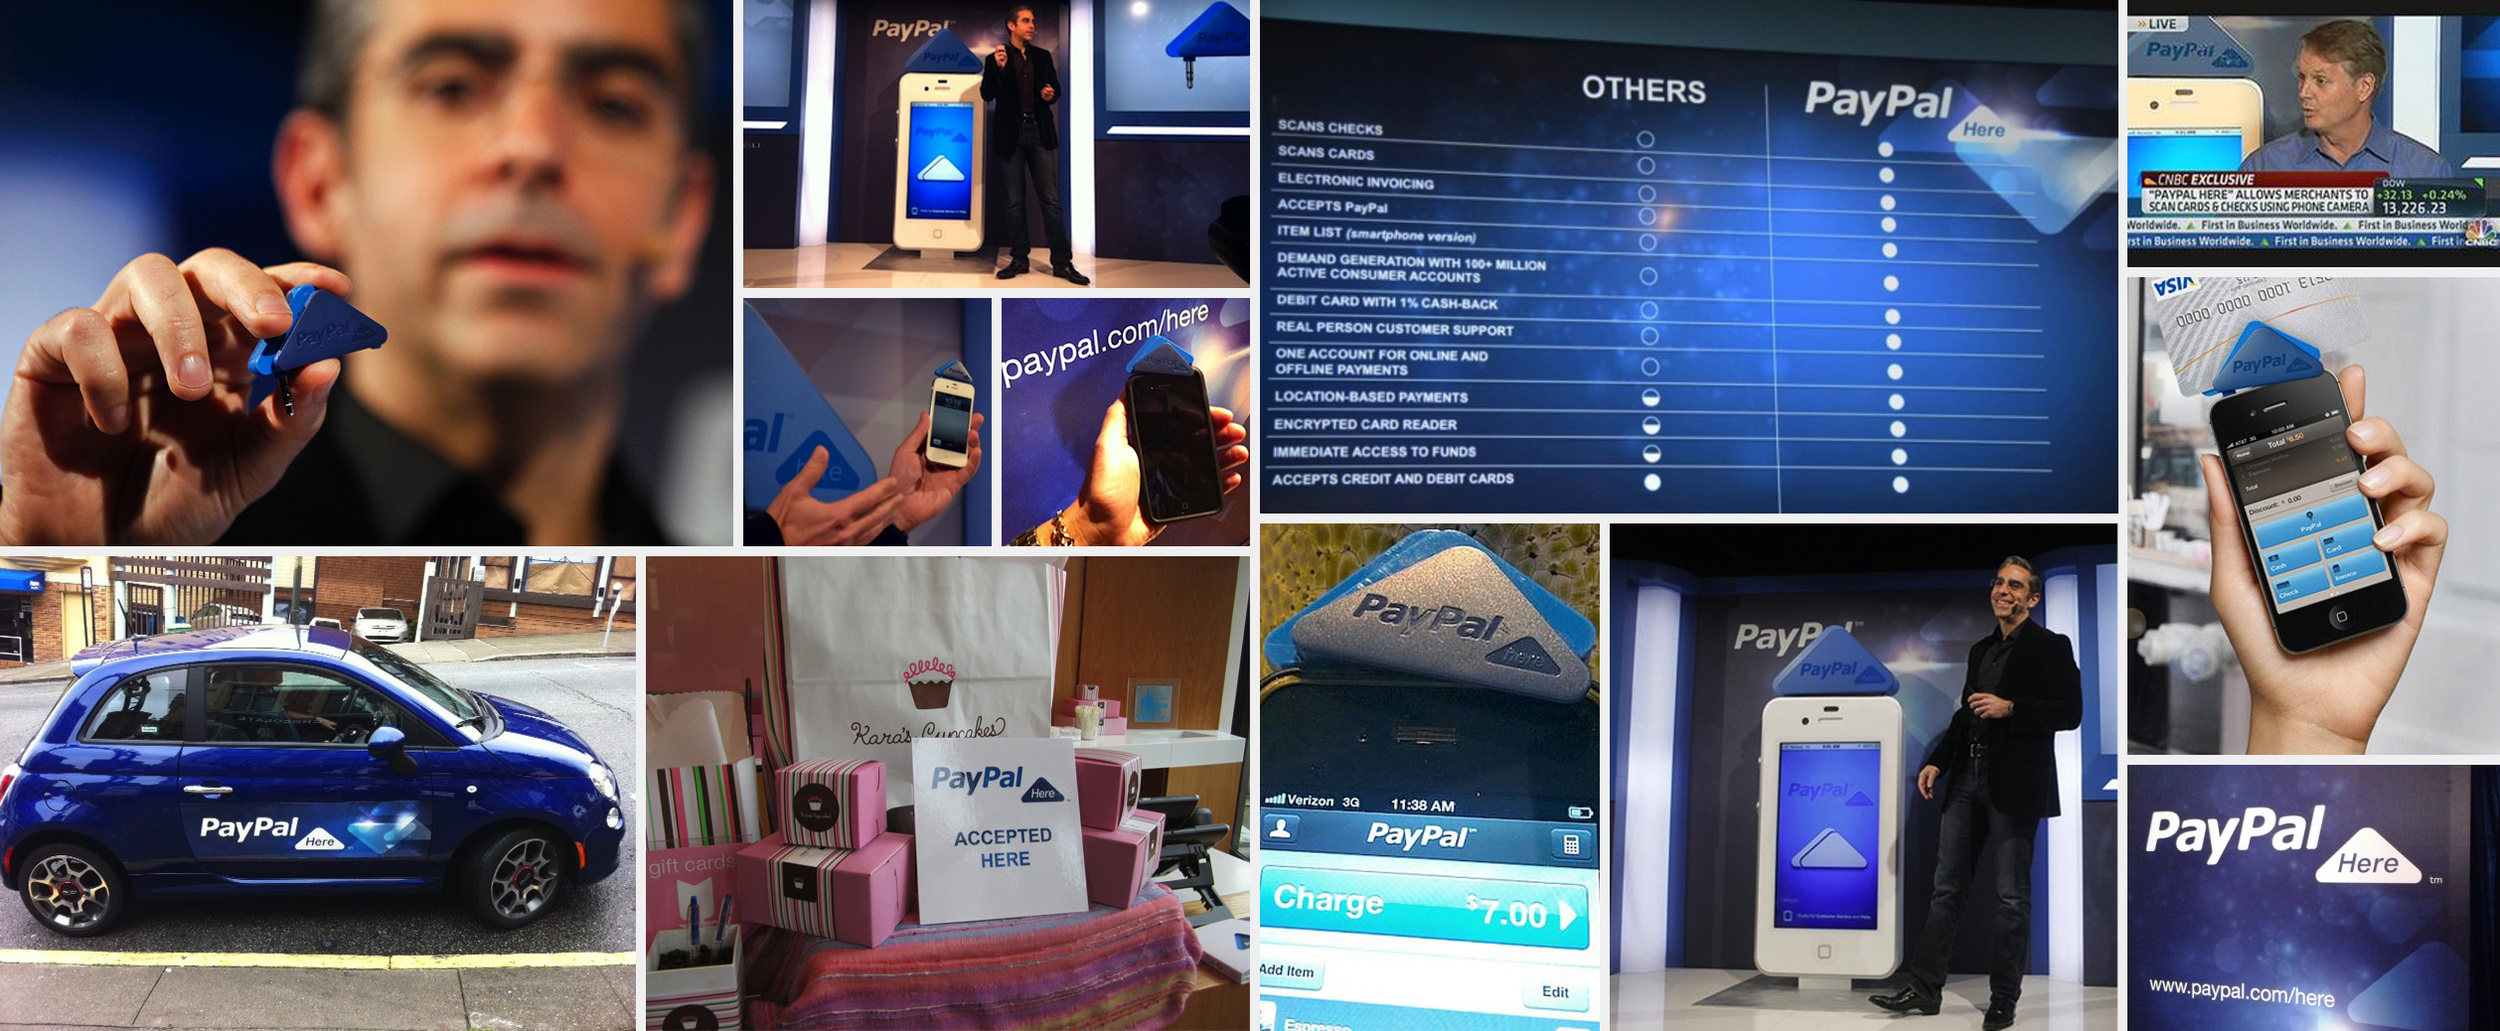 PayPal Here: Launch Event